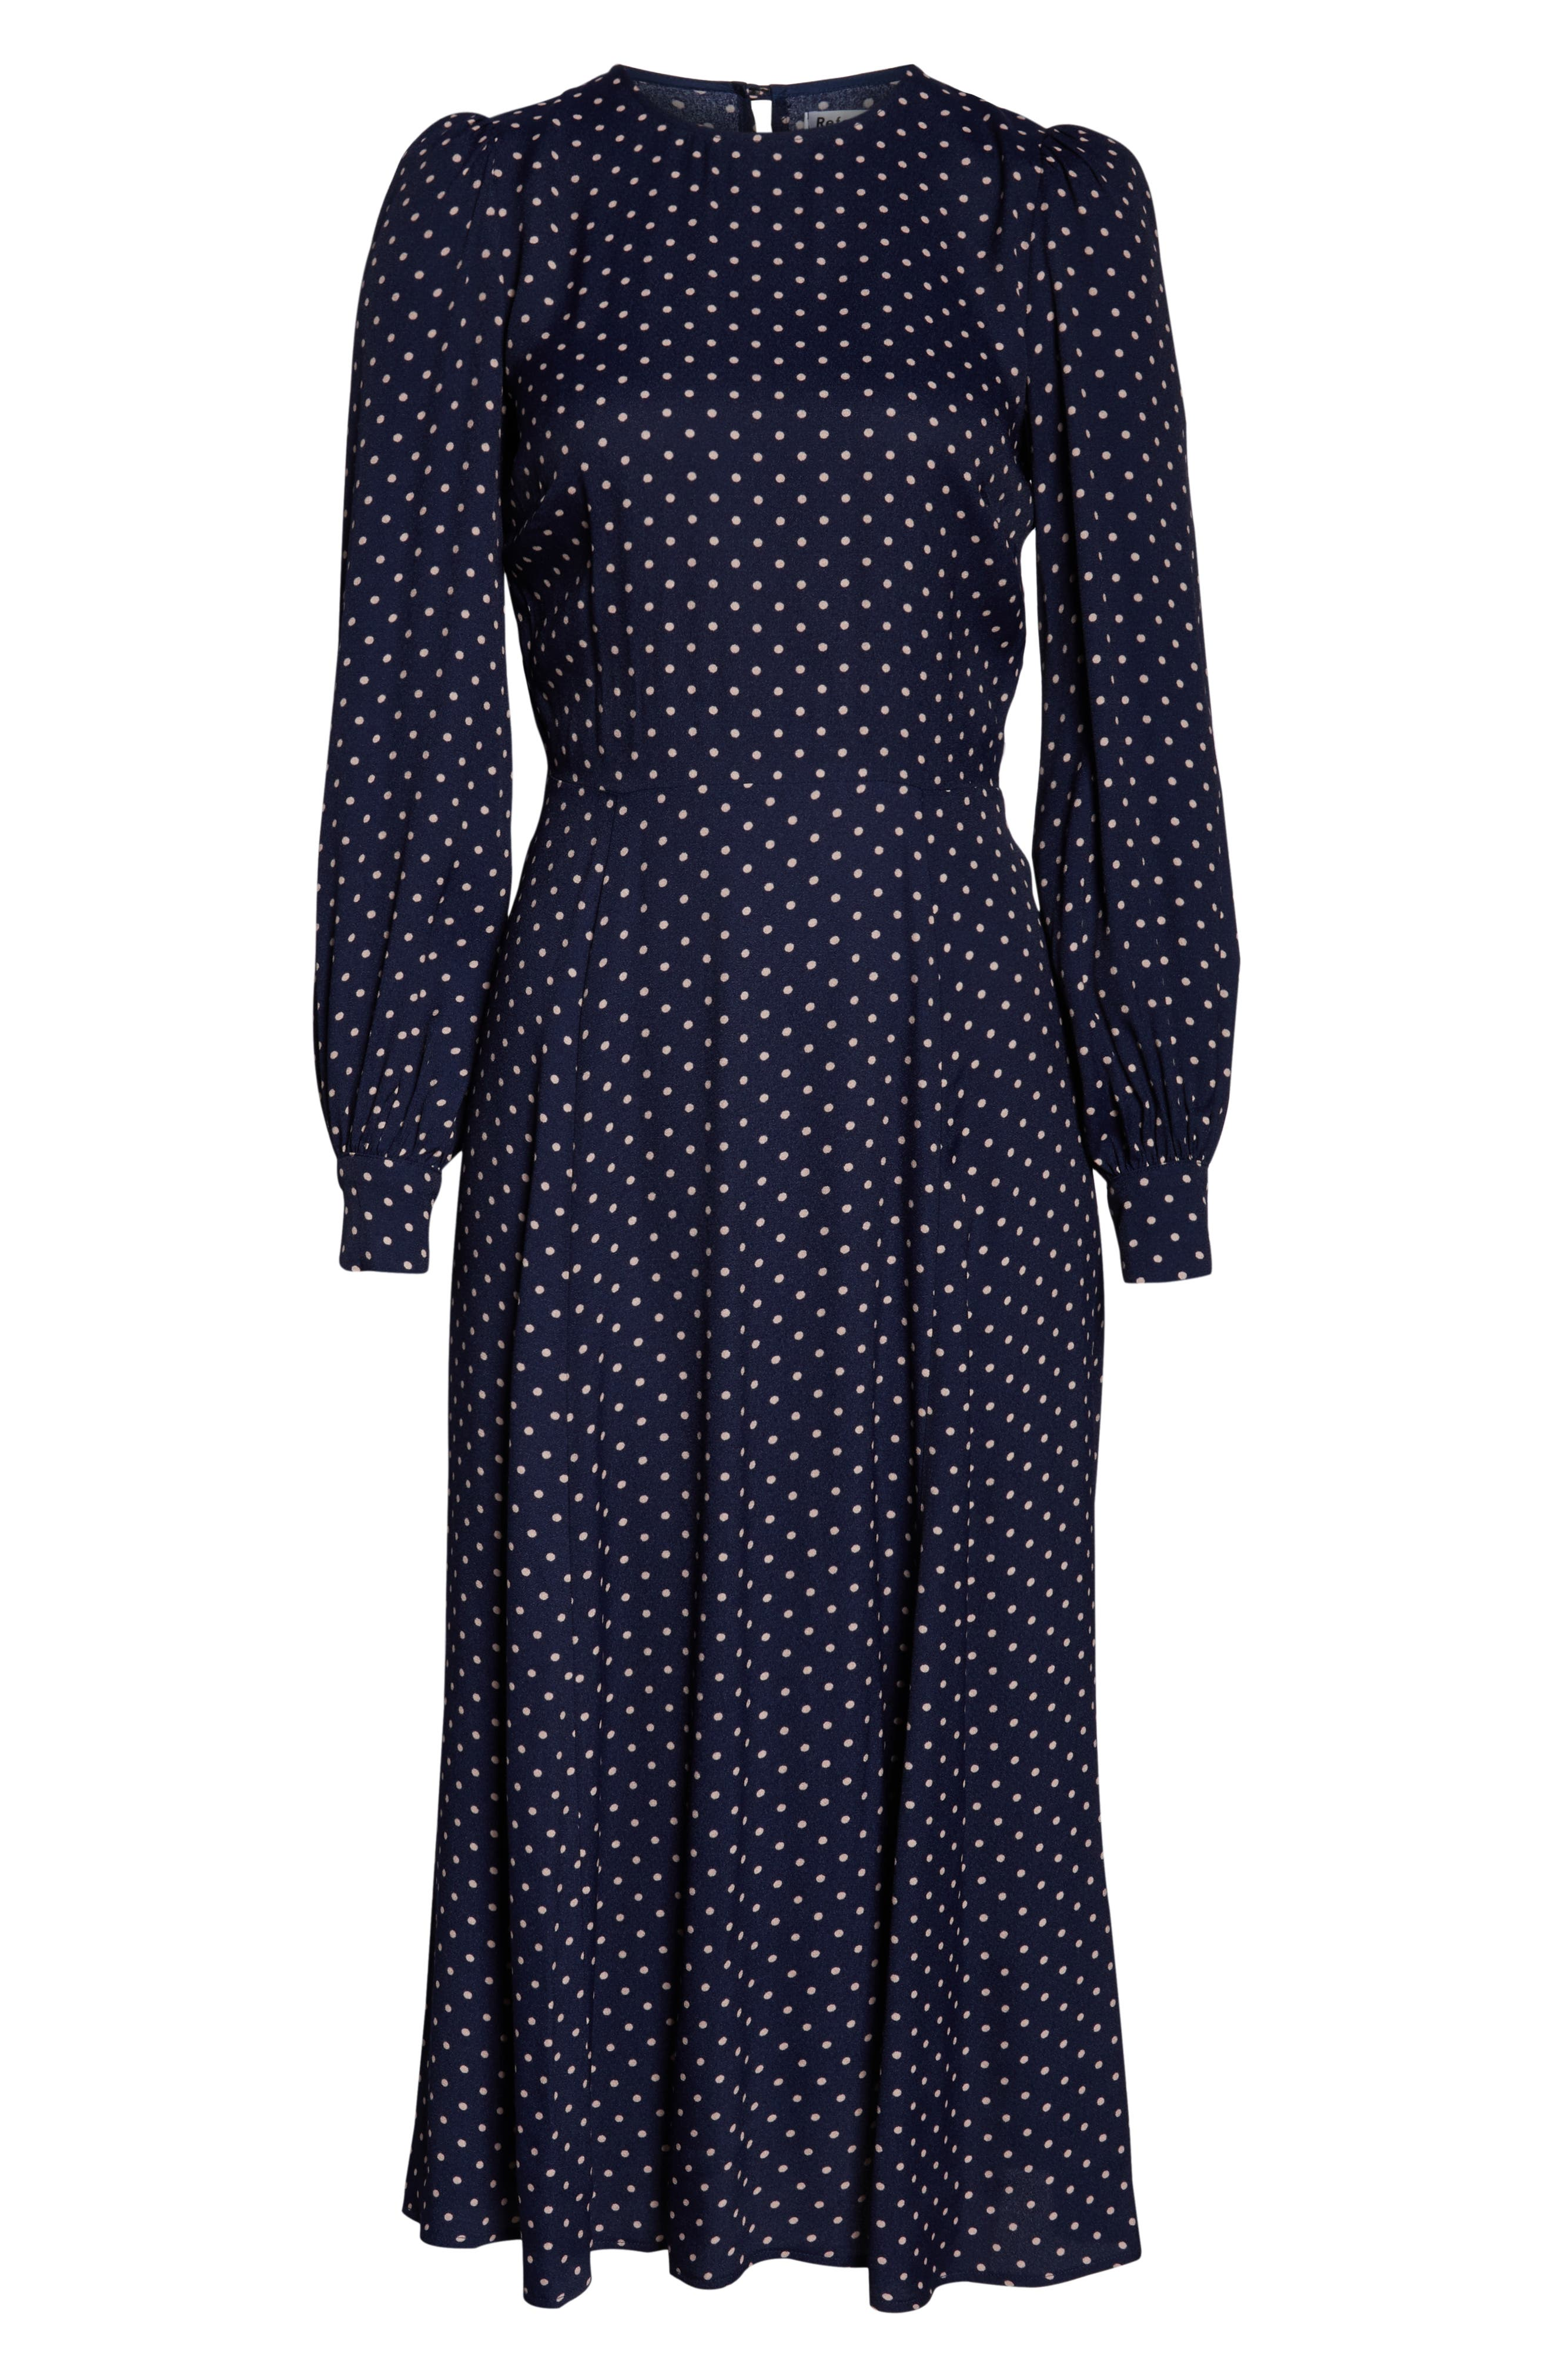 REFORMATION, Abigaile Long Sleeve Dress, Alternate thumbnail 6, color, AFTERNOON